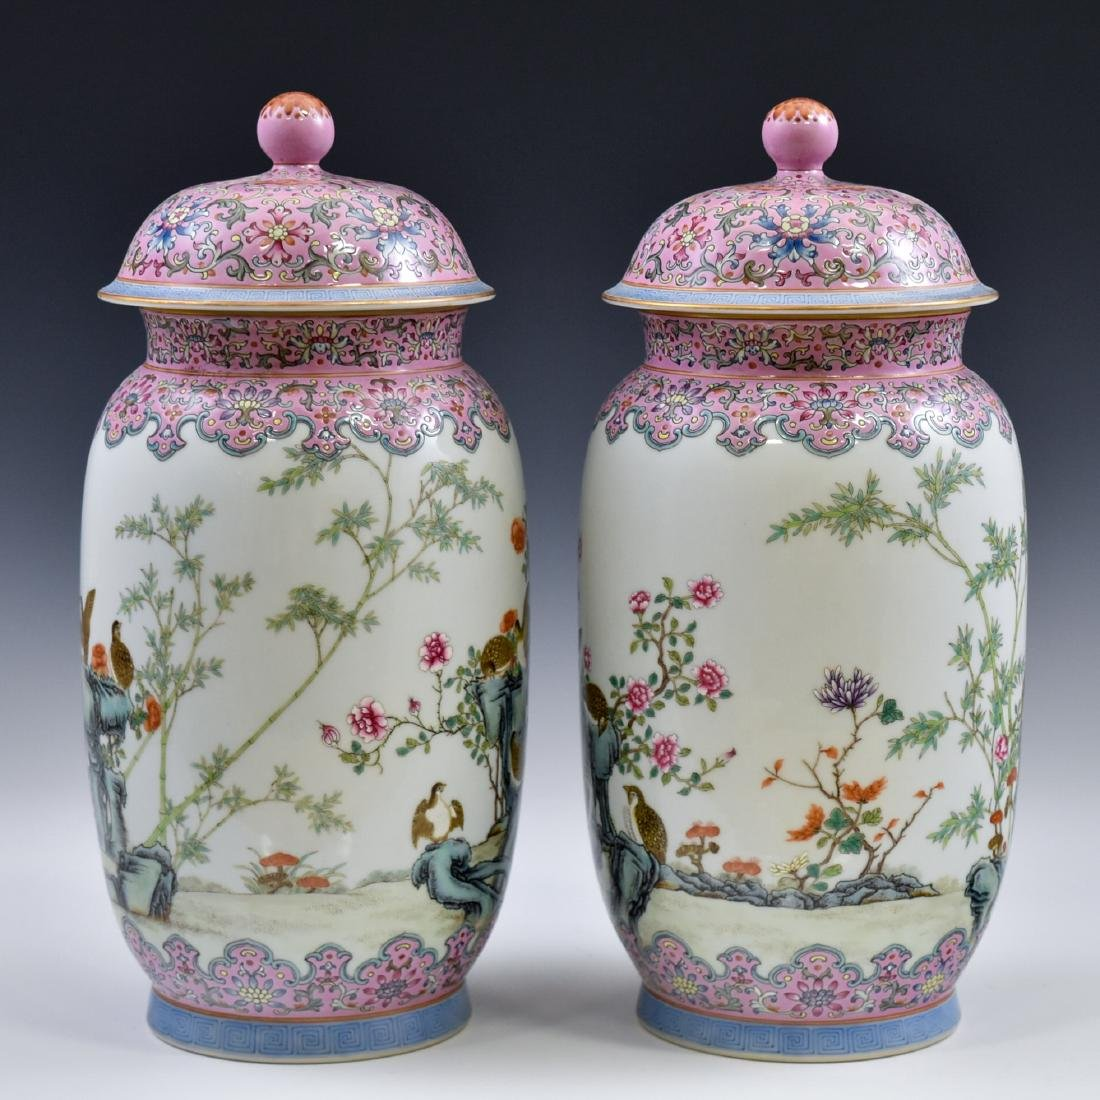 PAIR OF CHINESE FAMILLE ROSE PORCELAIN TEMPLE JARS - 3